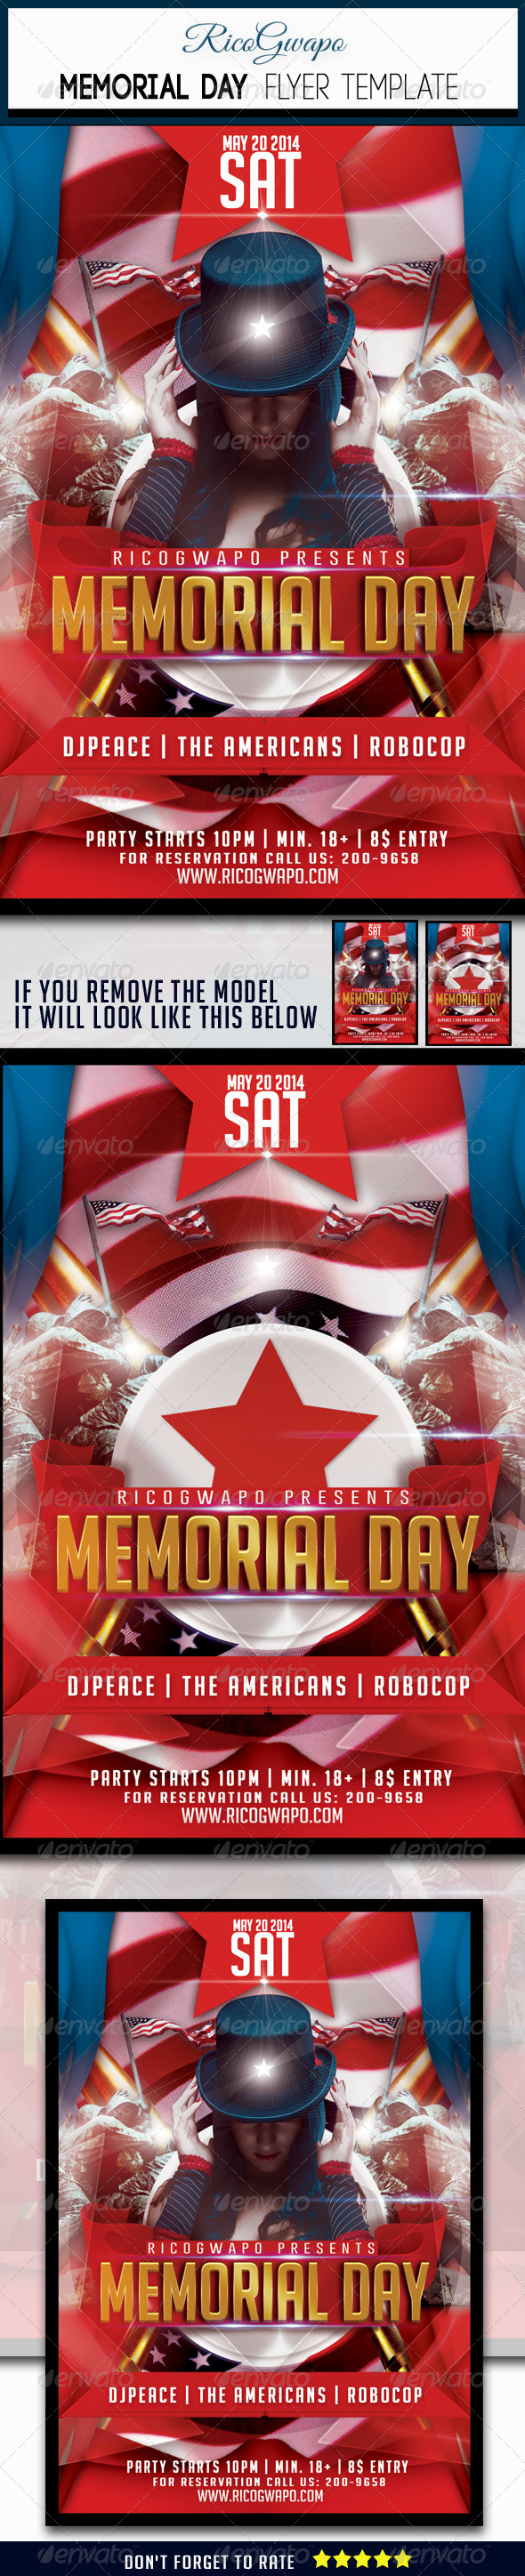 GraphicRiver Memorial Day Flyer Template 6984284